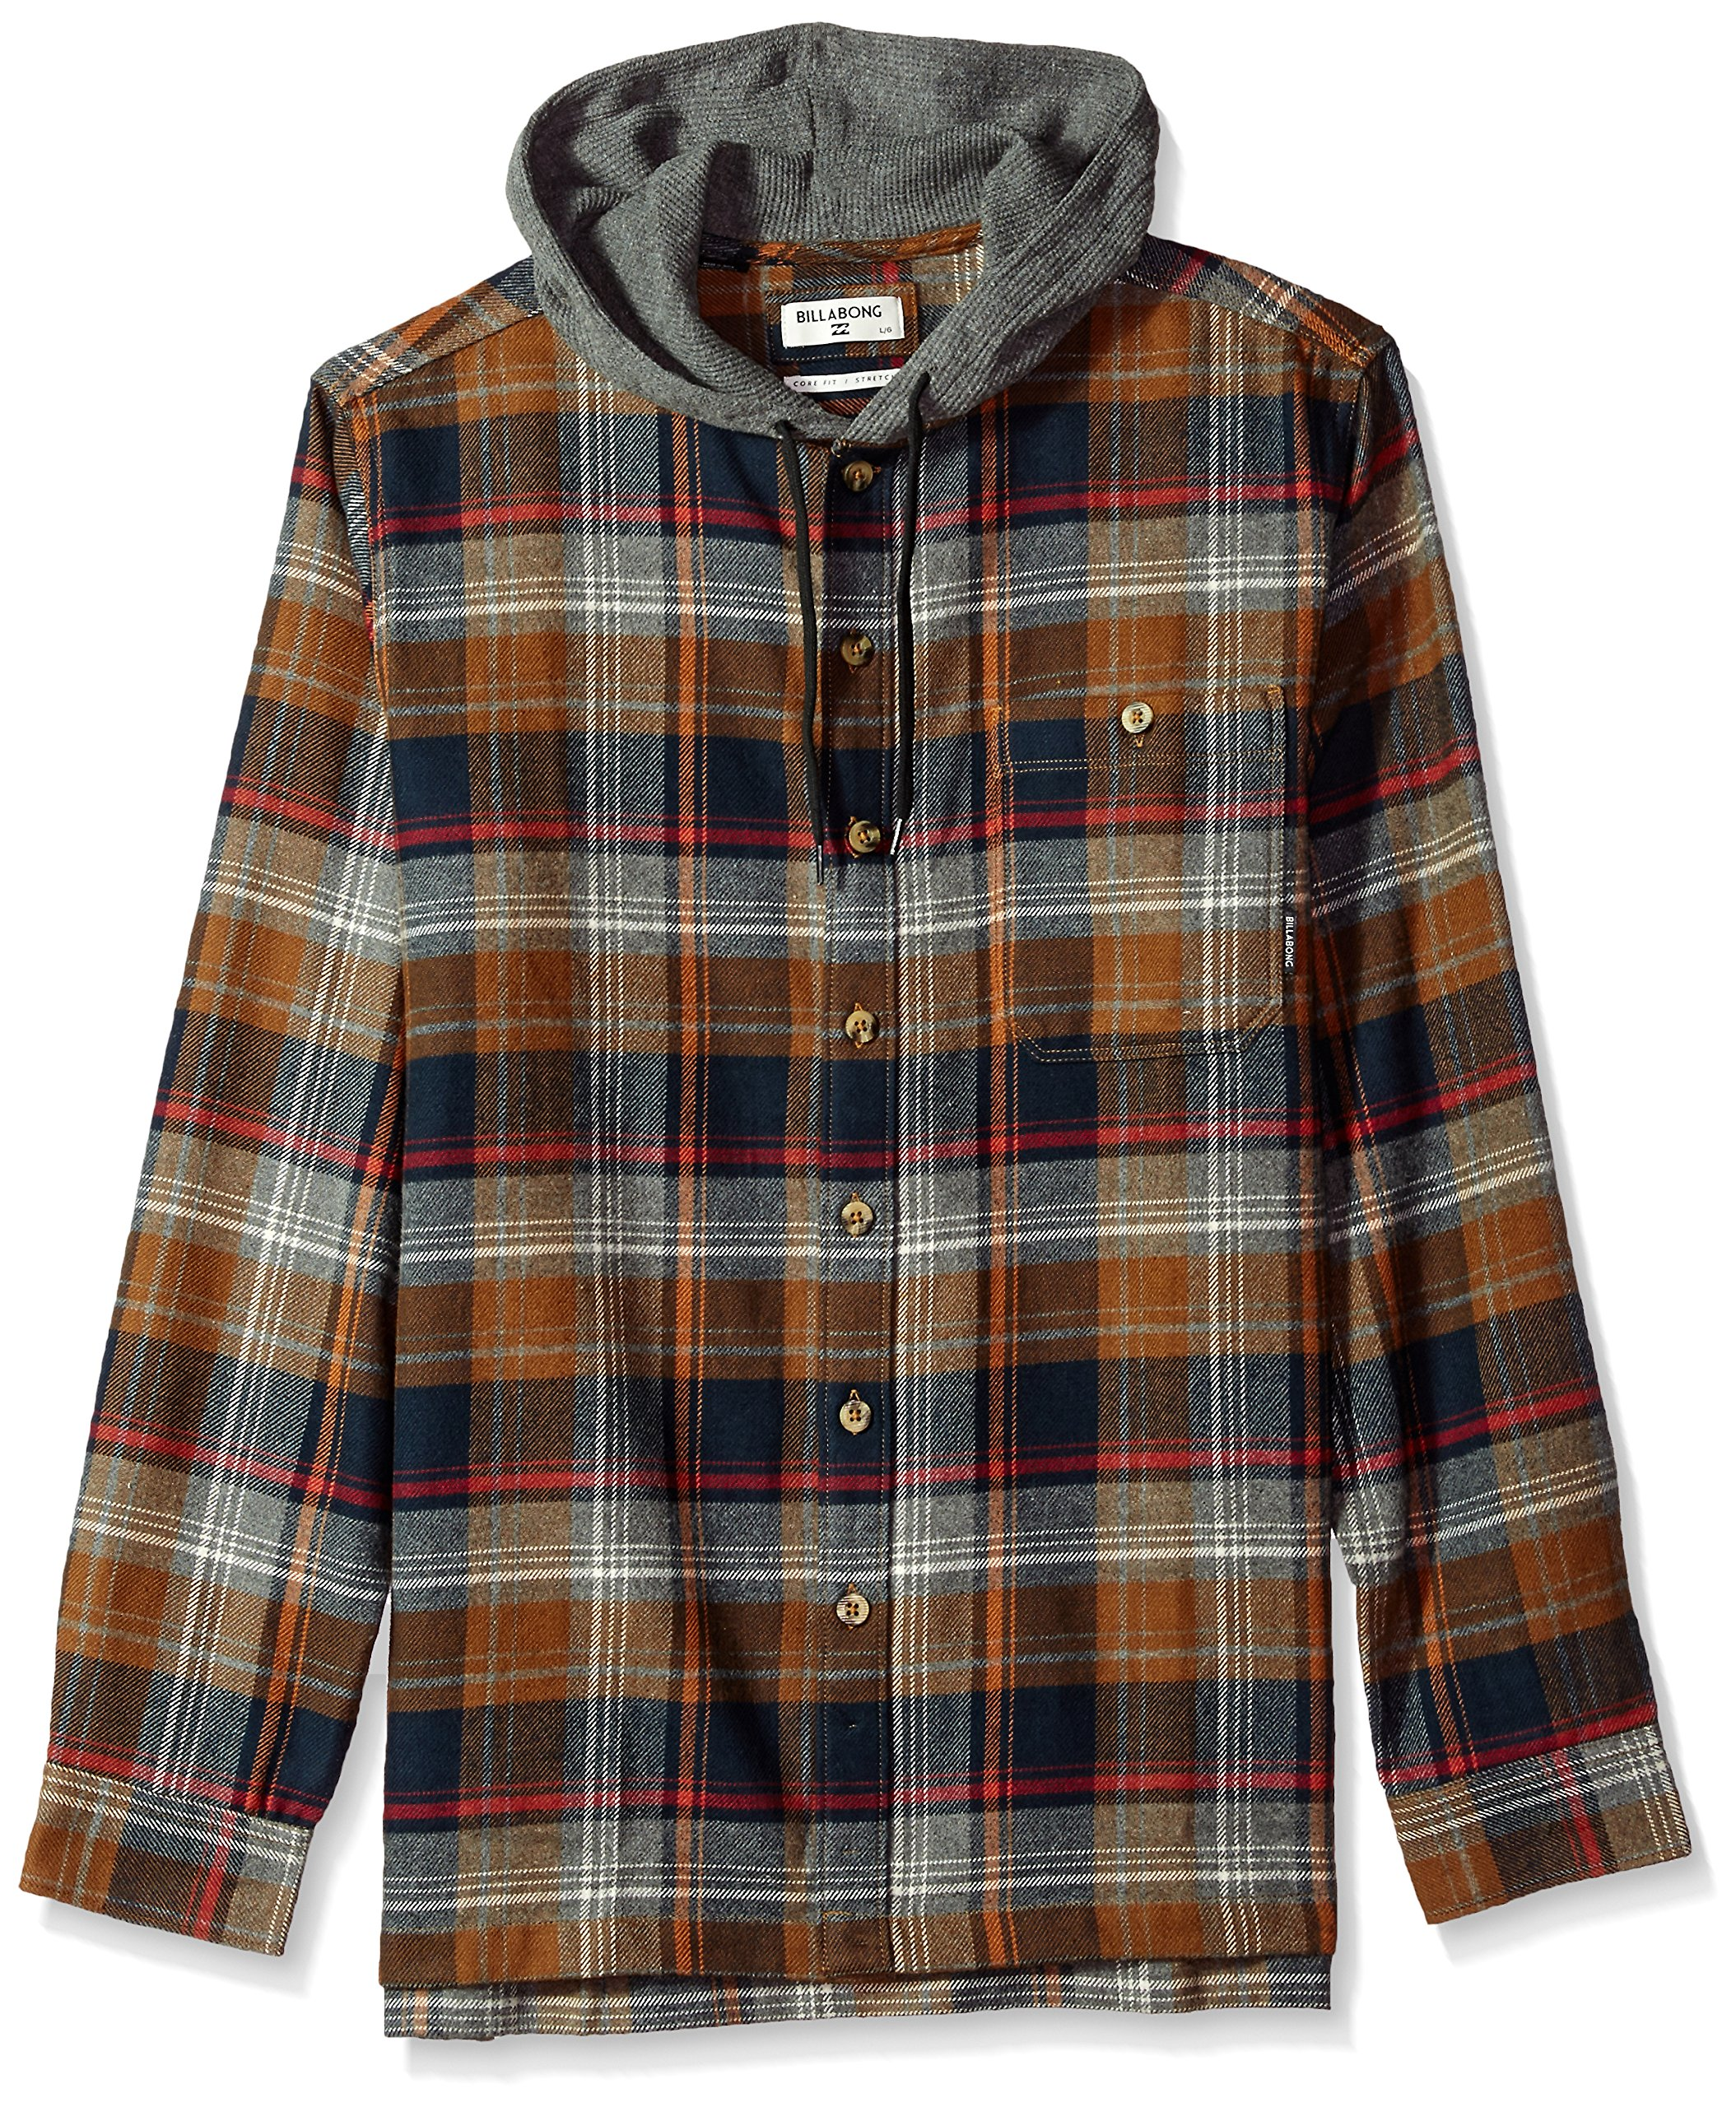 Billabong Men's Baja Flannel, Tobacco, S by Billabong